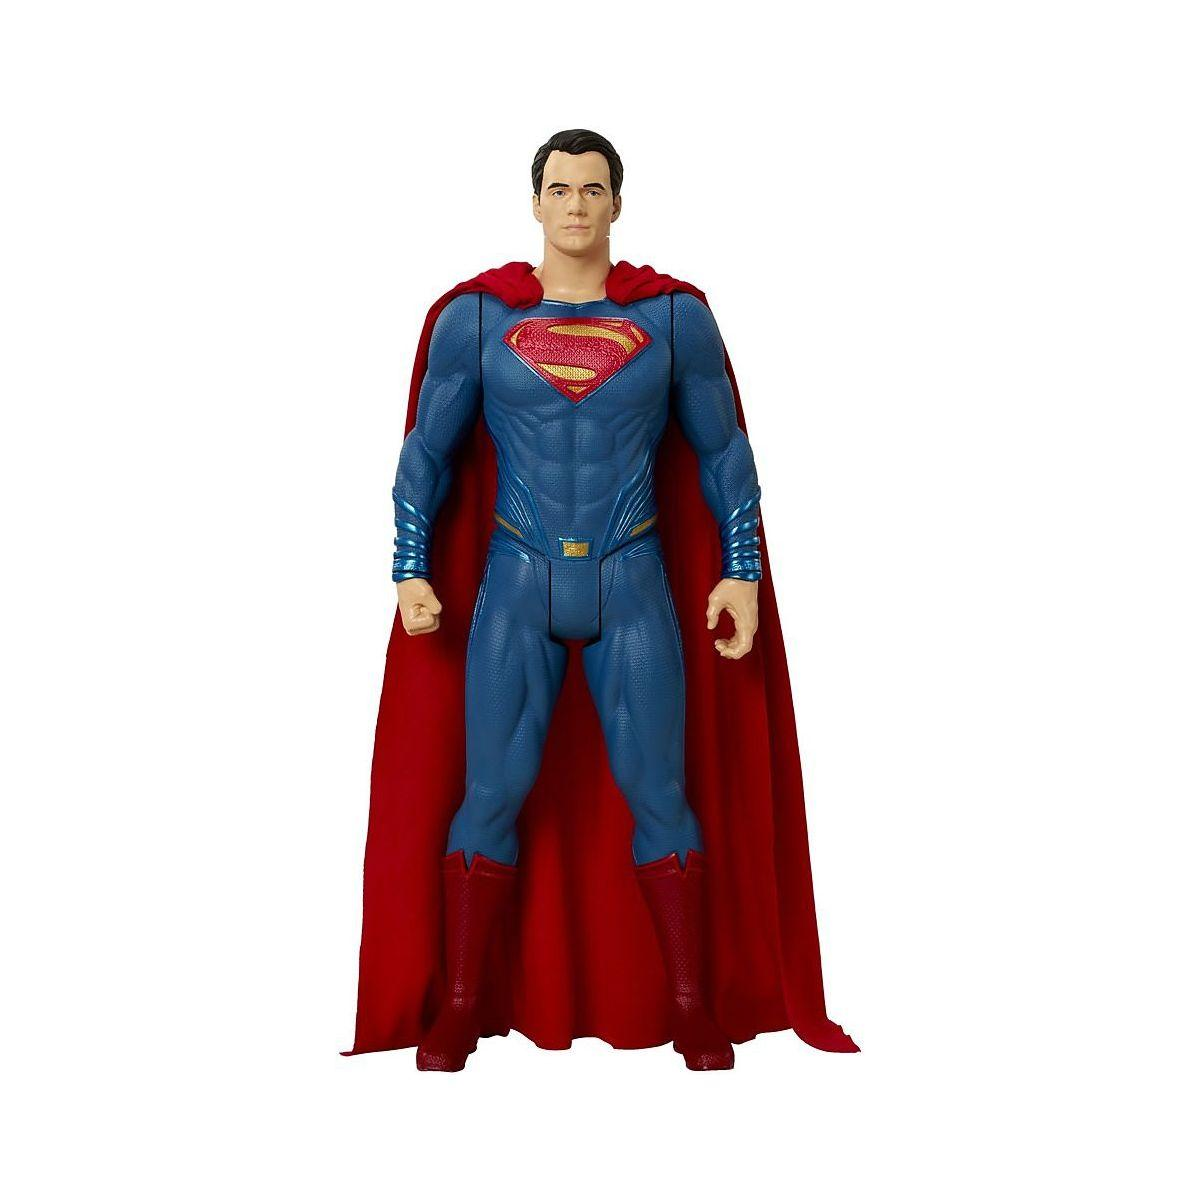 Figurine polymark superman 50cm (photo)